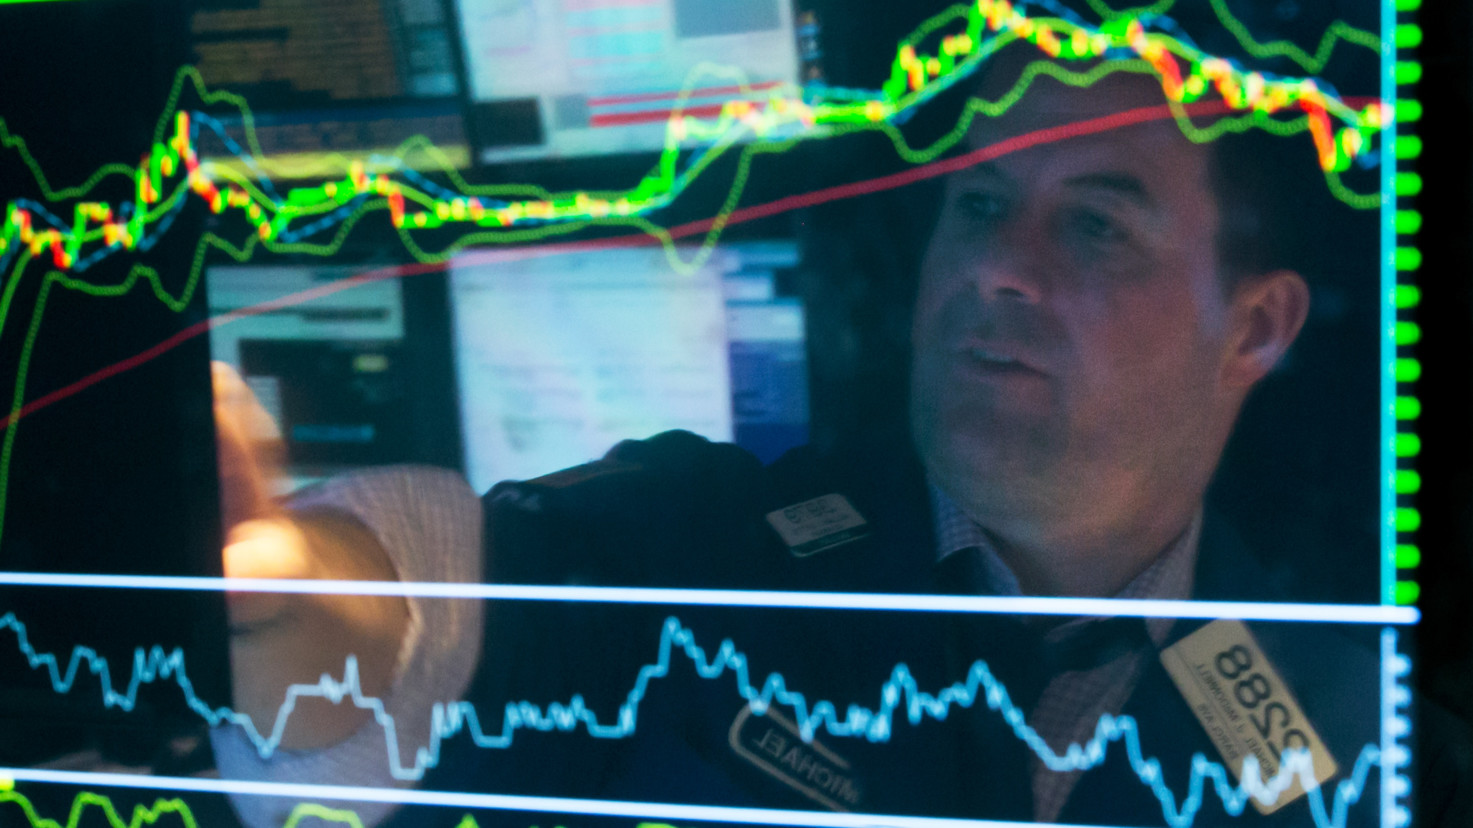 The main types of trading indicators you should know